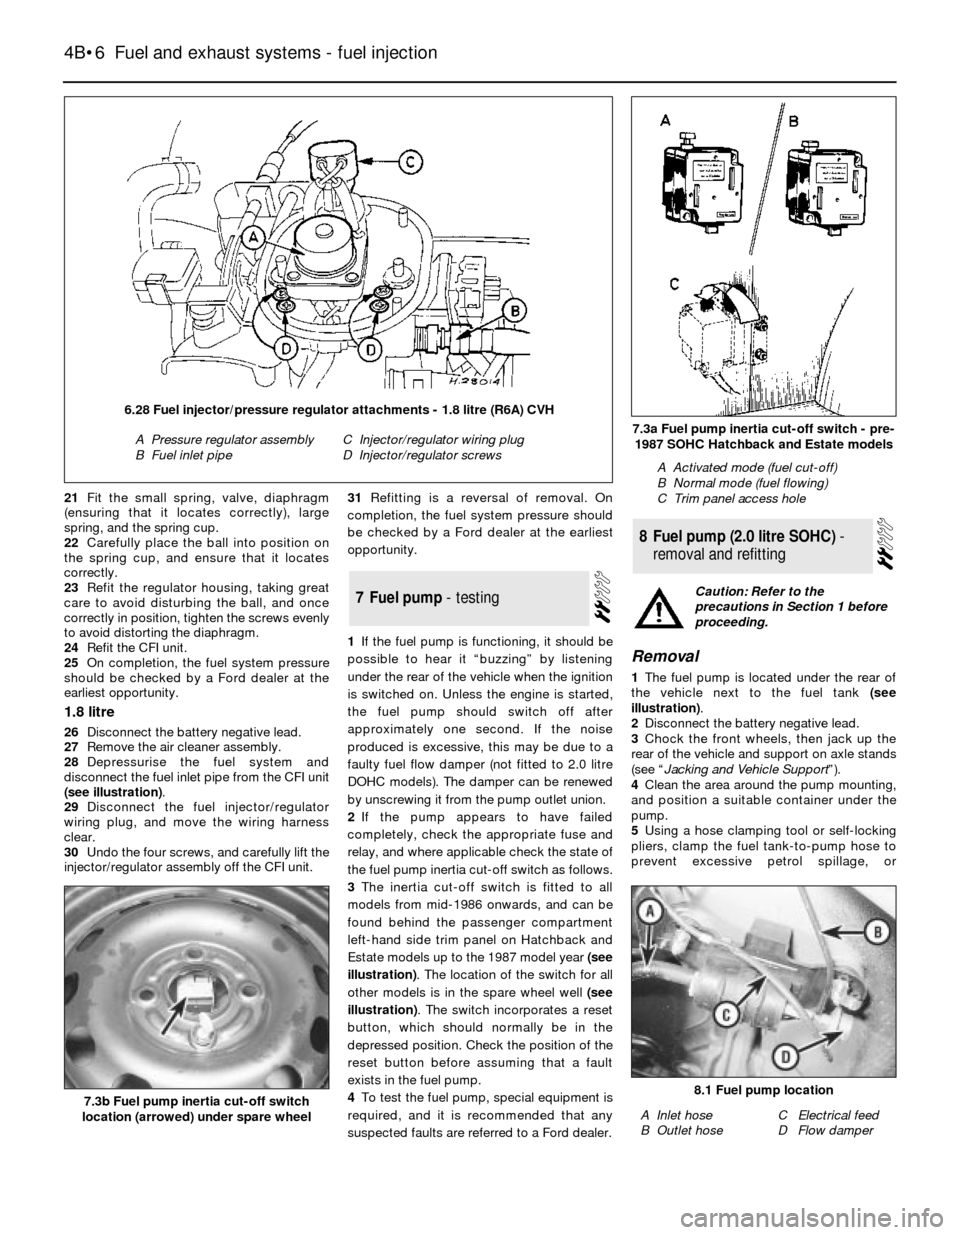 FORD SIERRA 1993 2.G Fuel And Exhaust Systems Fuel Injection Workshop Manual, Page 6